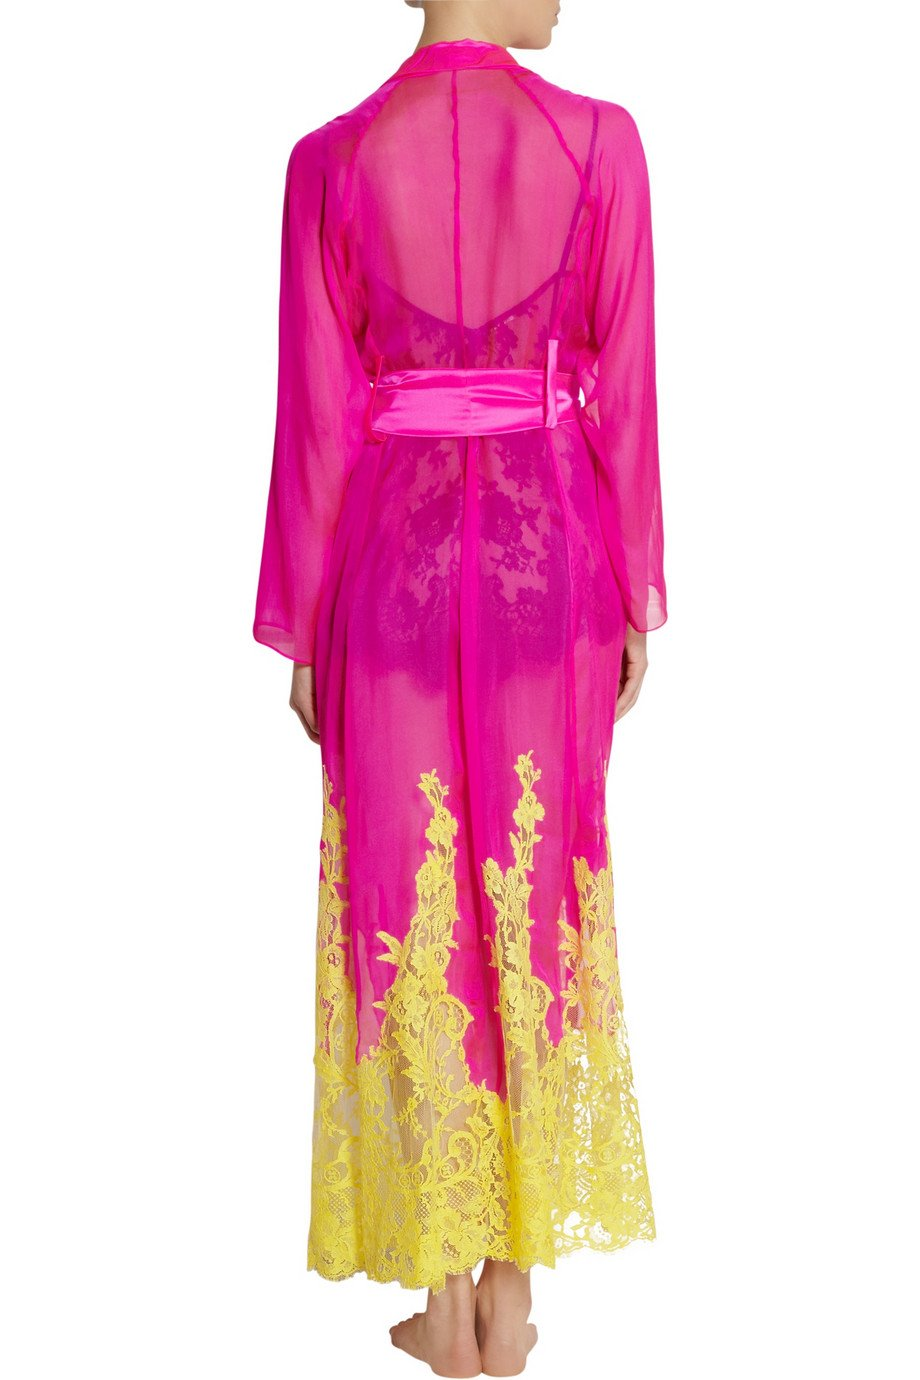 rosamosario-pink-bling-bling-love-lace-trimmed-silk-robe-product-1-26539546-3-159862342-normal